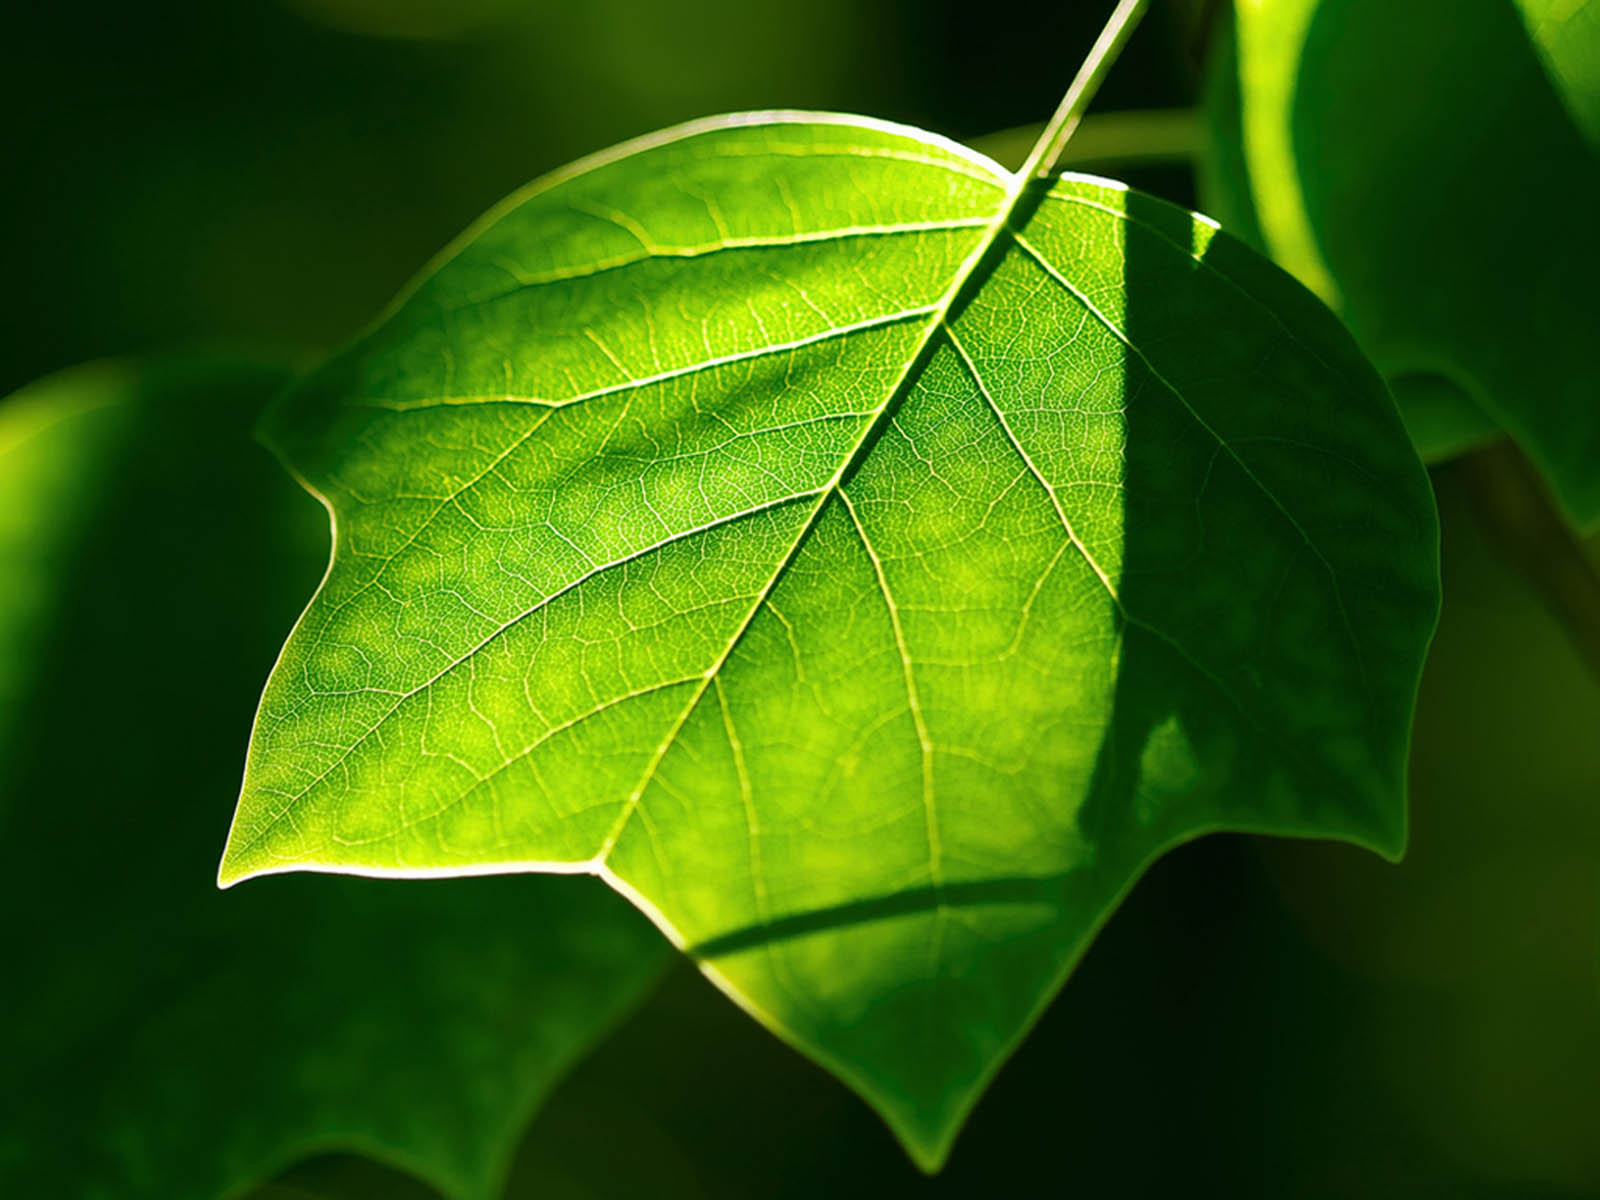 Wallpapers green leaf wallpapers - Wallpaper photos ...